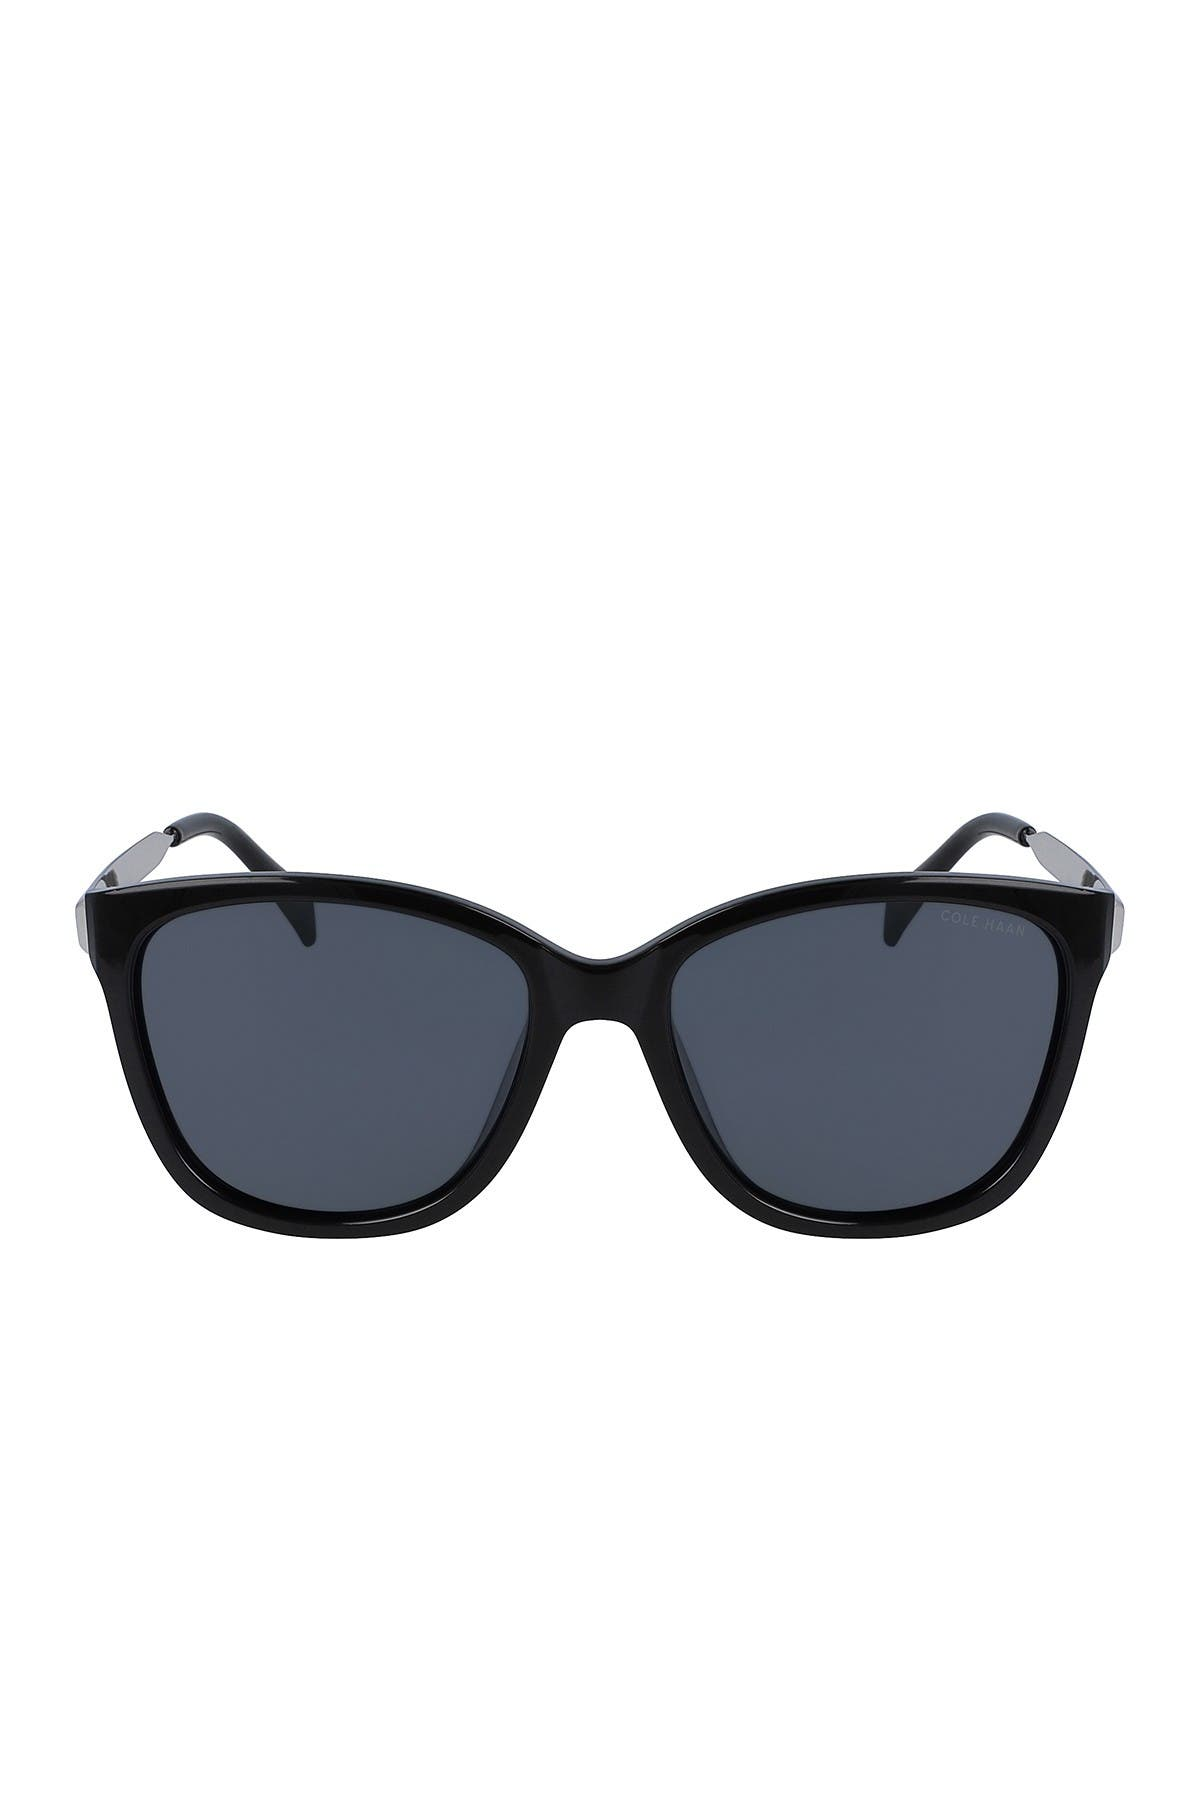 Image of Cole Haan 57mm Sleek Square Sunglasses